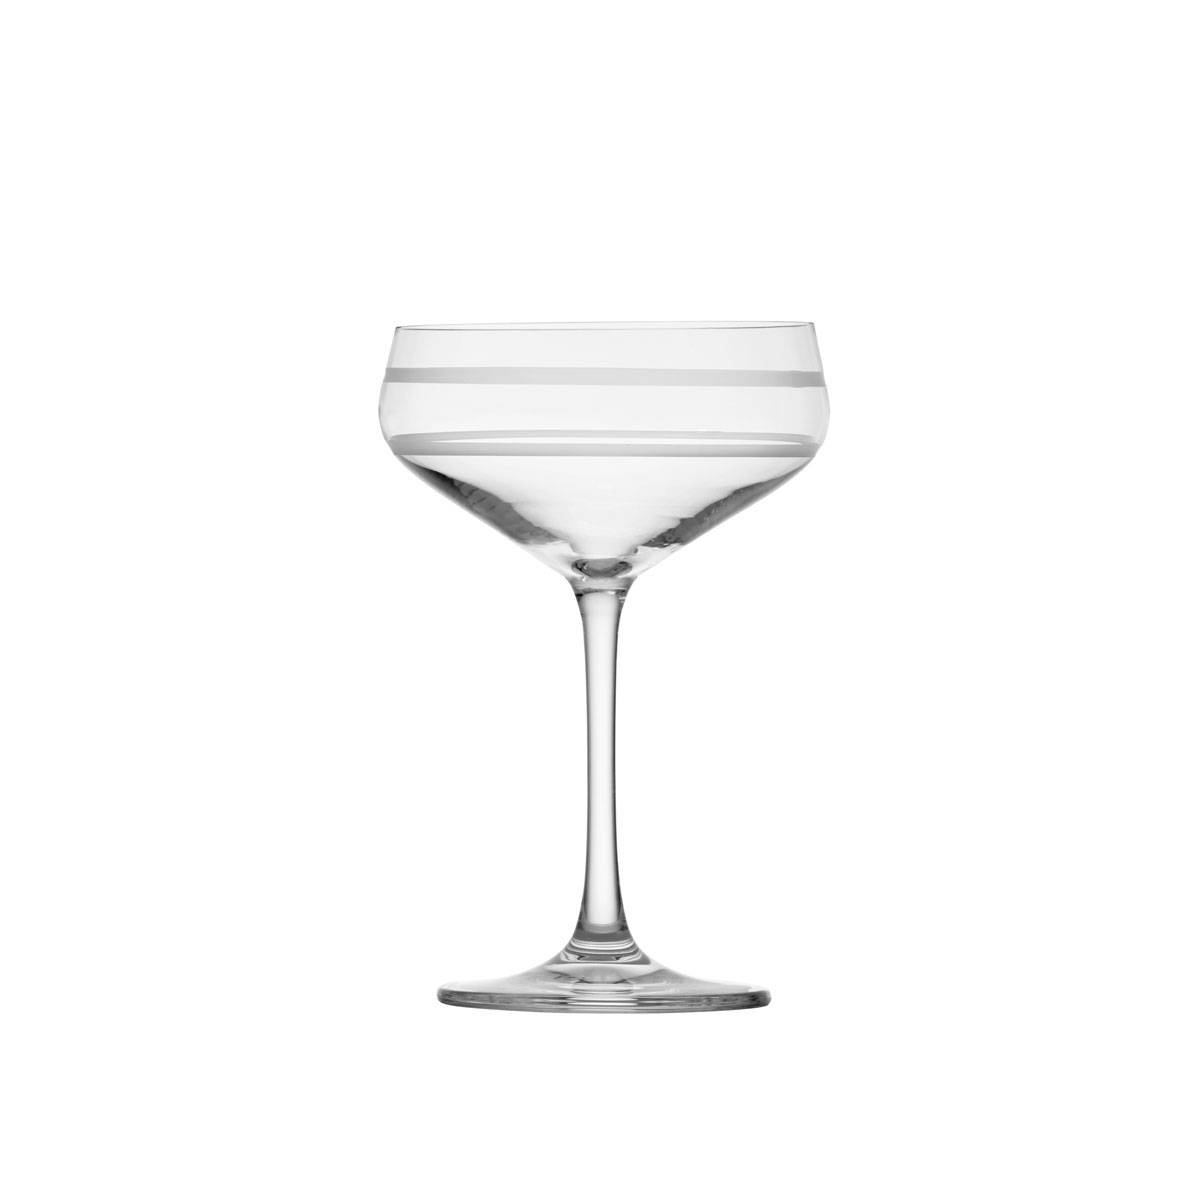 Schott Zwiesel Tritan Crystal, Crafthouse Coupe Cocktail, Single